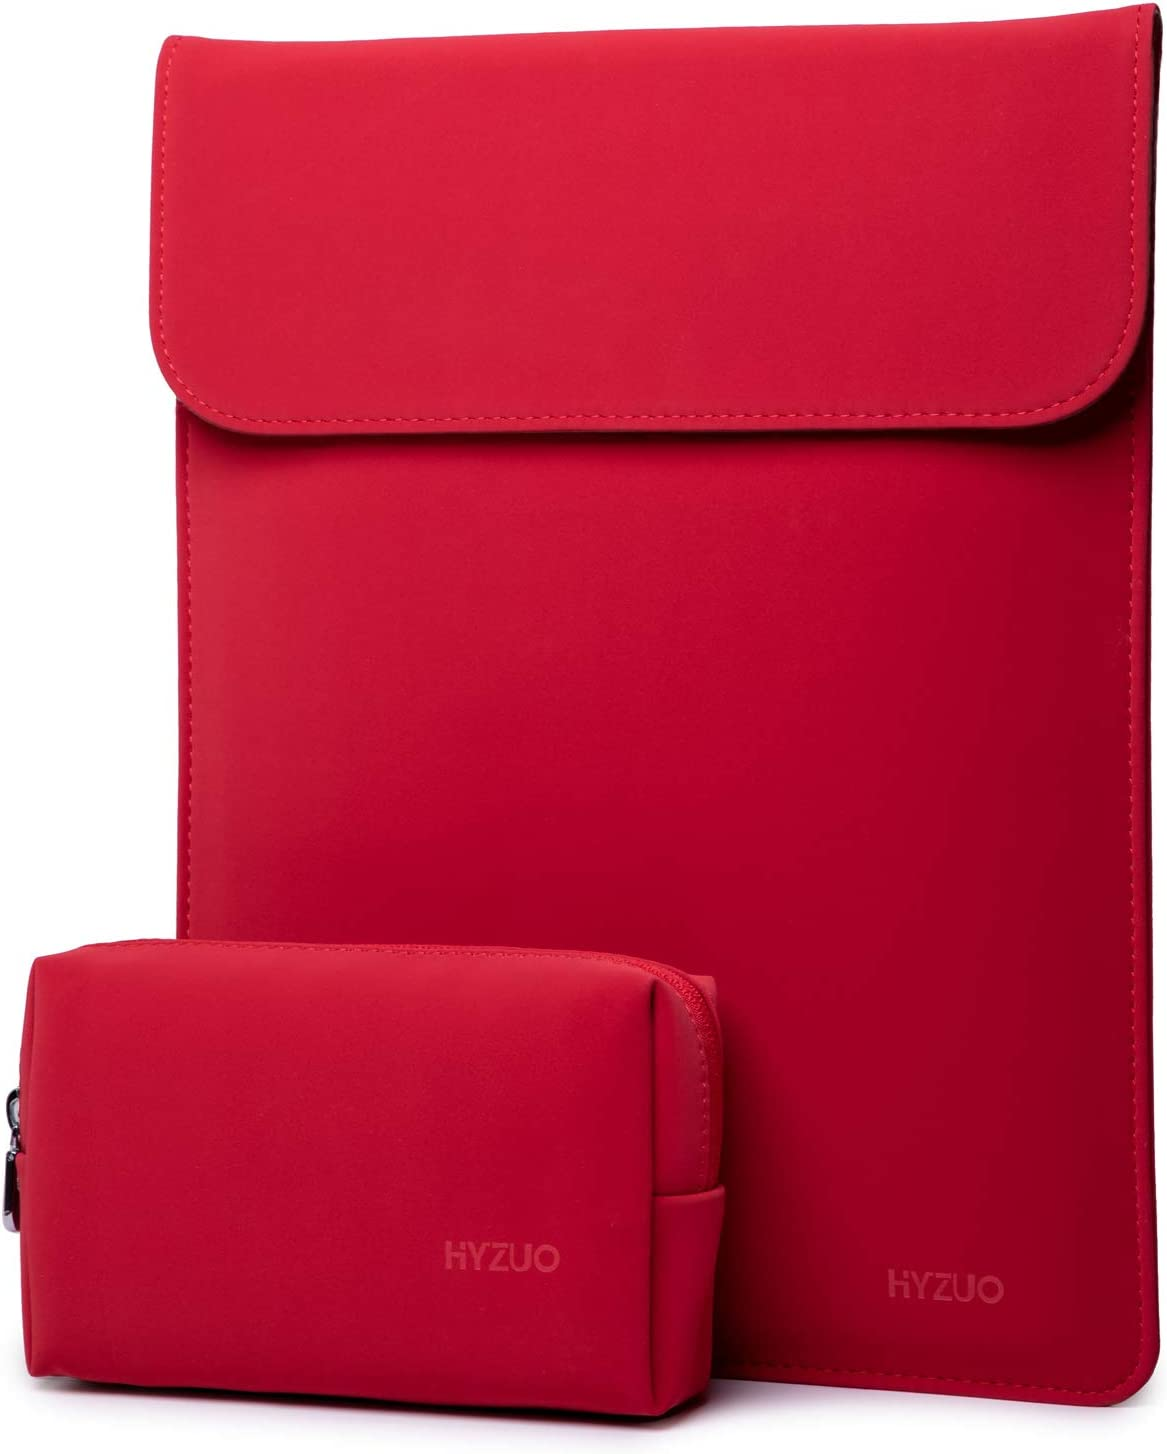 HYZUO 15-16 Inch Laptop Sleeve Case Compatible with 2019 MacBook Pro 16 A2141/ Surface Laptop 3 15 Inch/Dell XPS 15/2012-2015 Old MacBook Pro Retina 15 A1398, Red